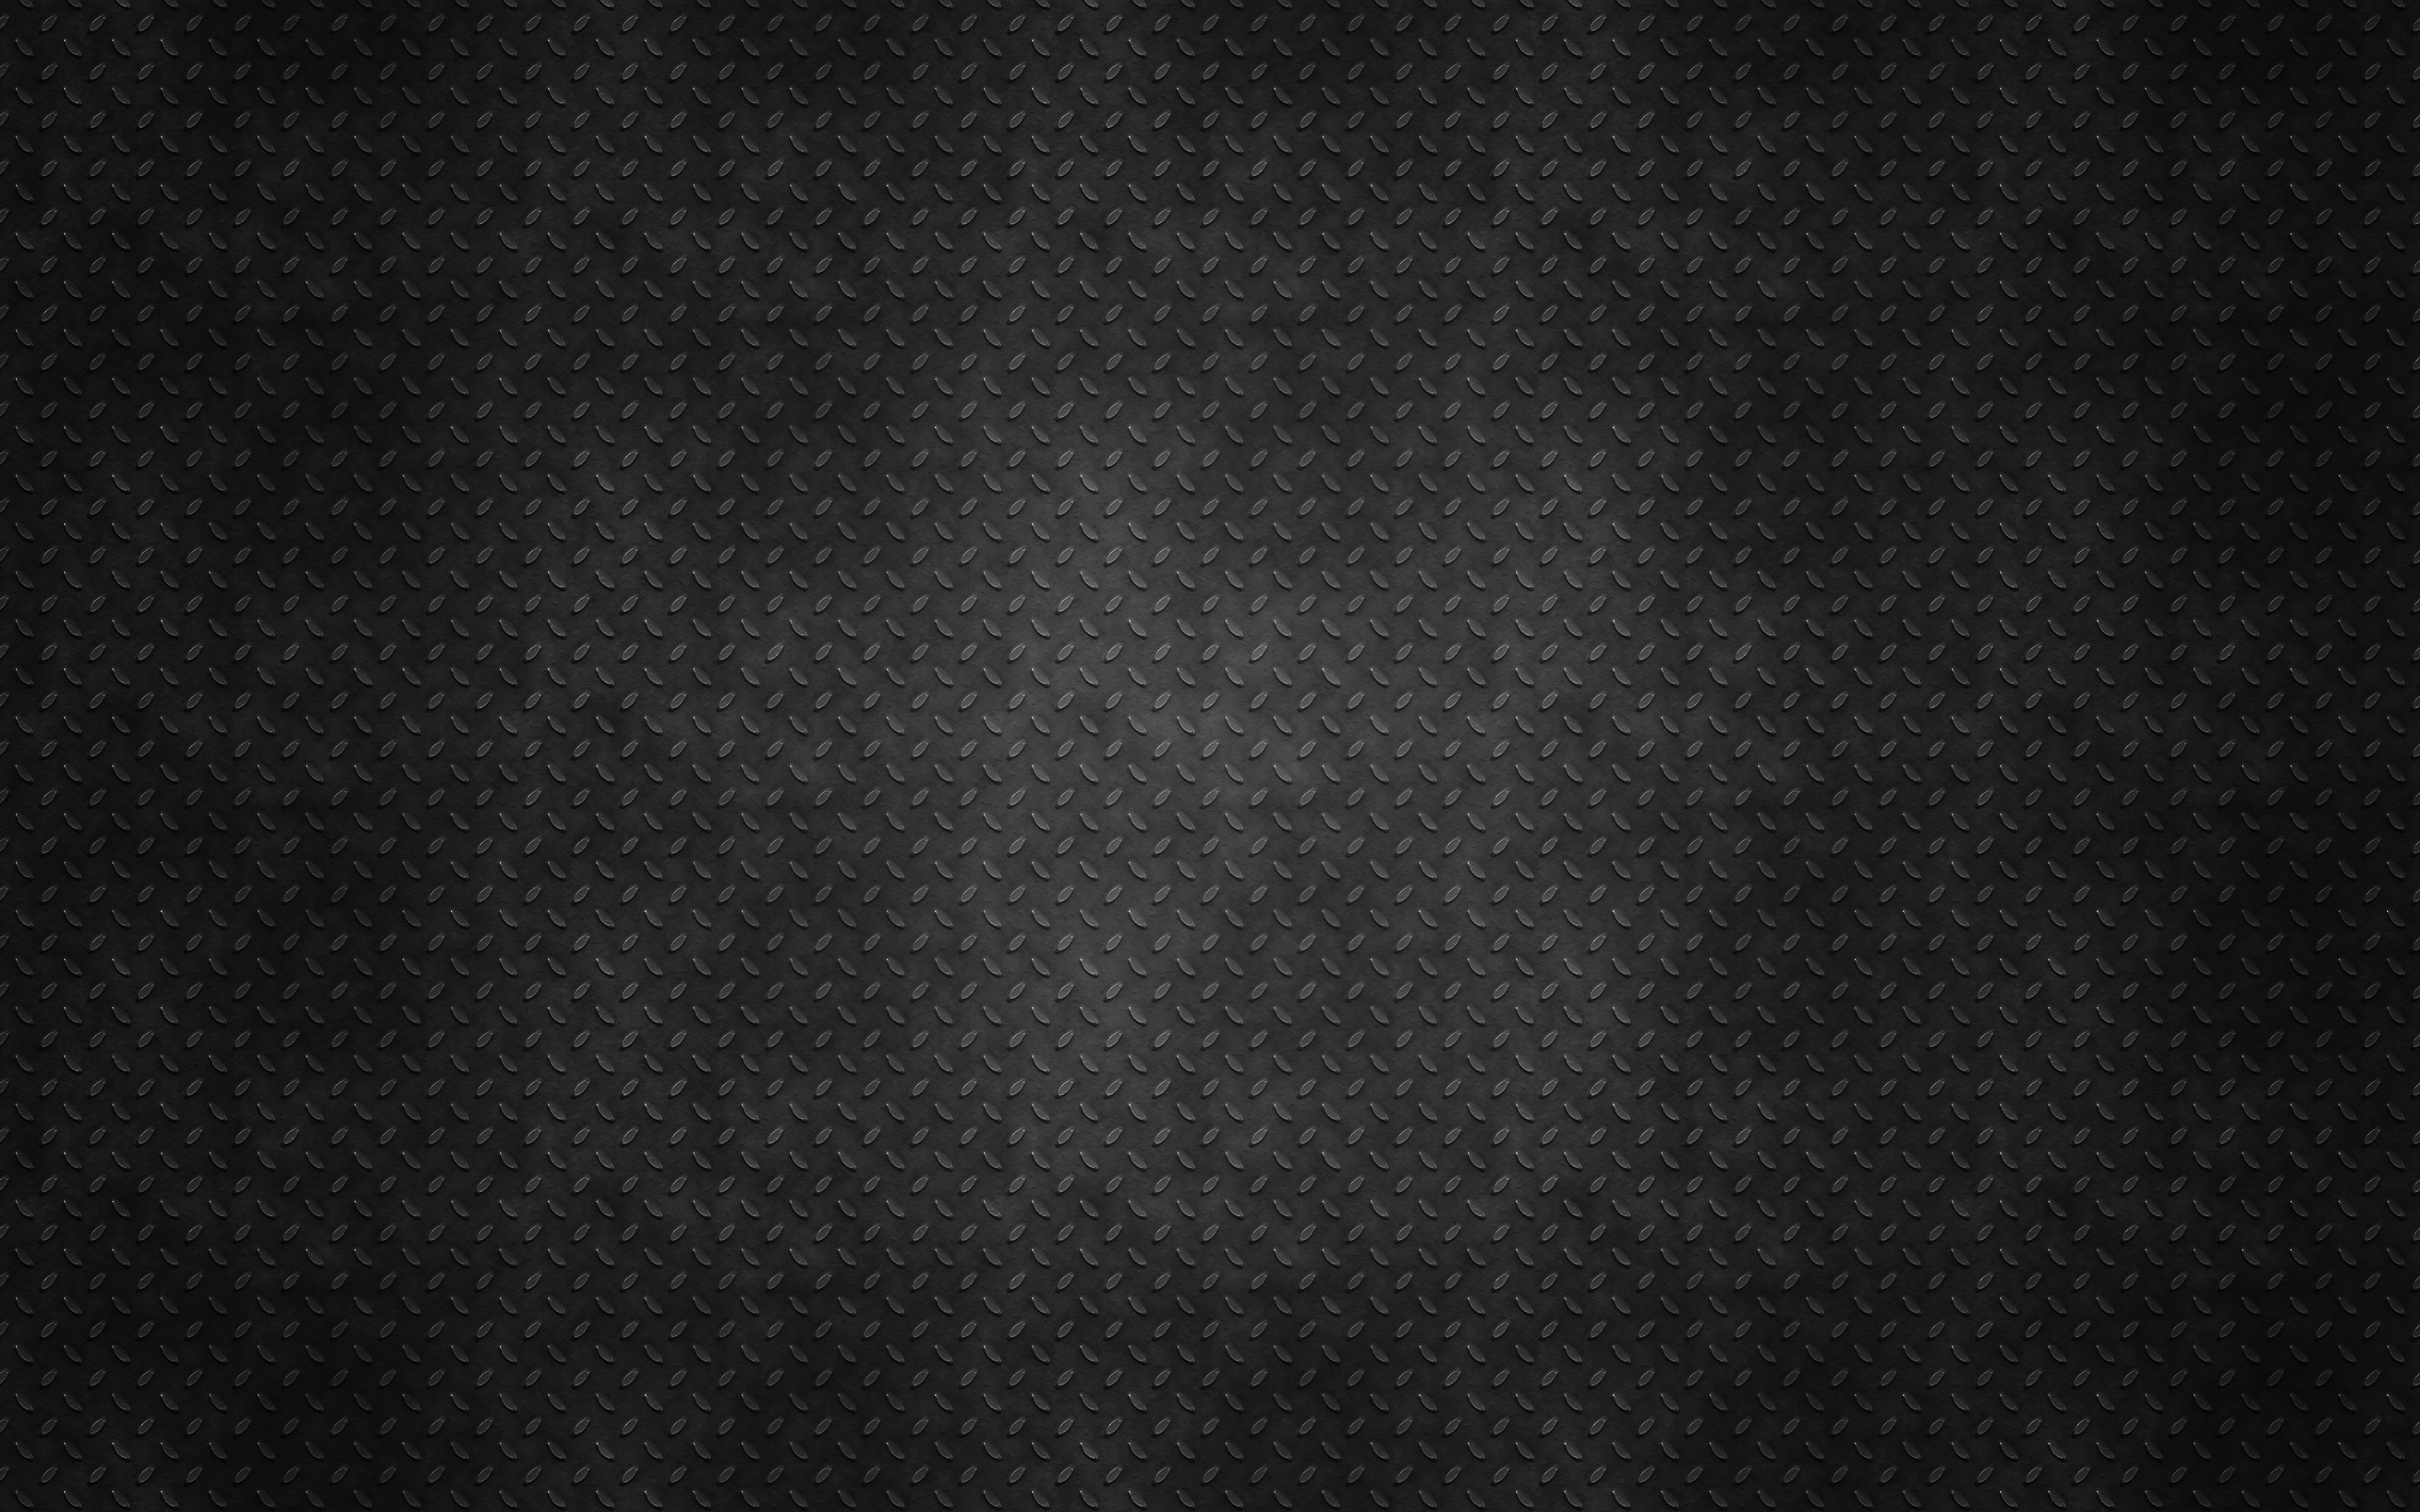 Abstract Metal Texture Wallpaper